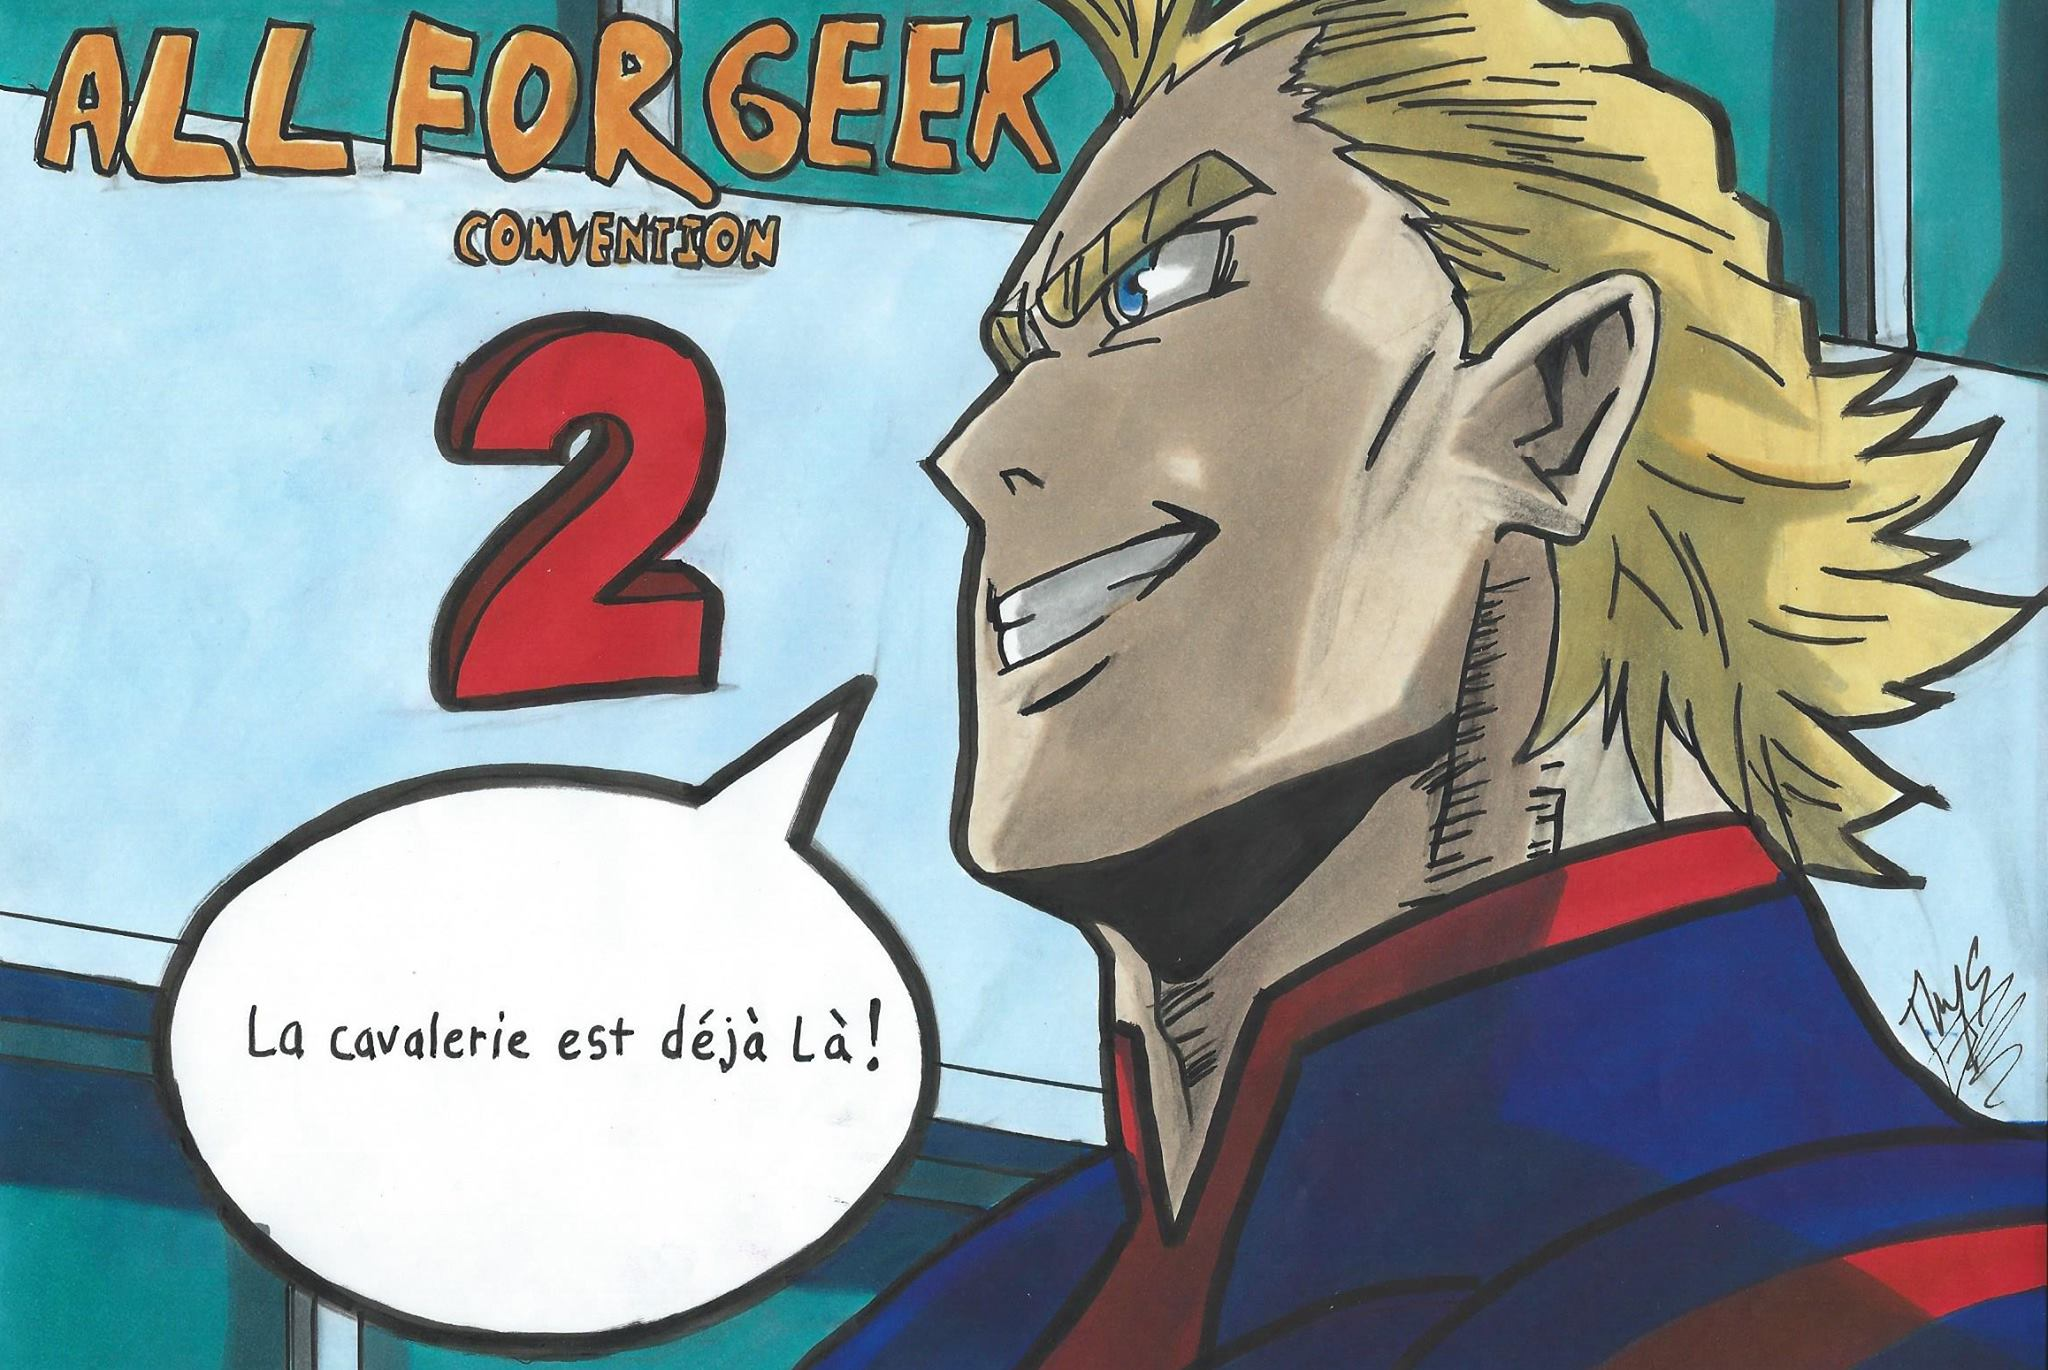 [ÉVÉNEMENT] Convention All For Geek 2